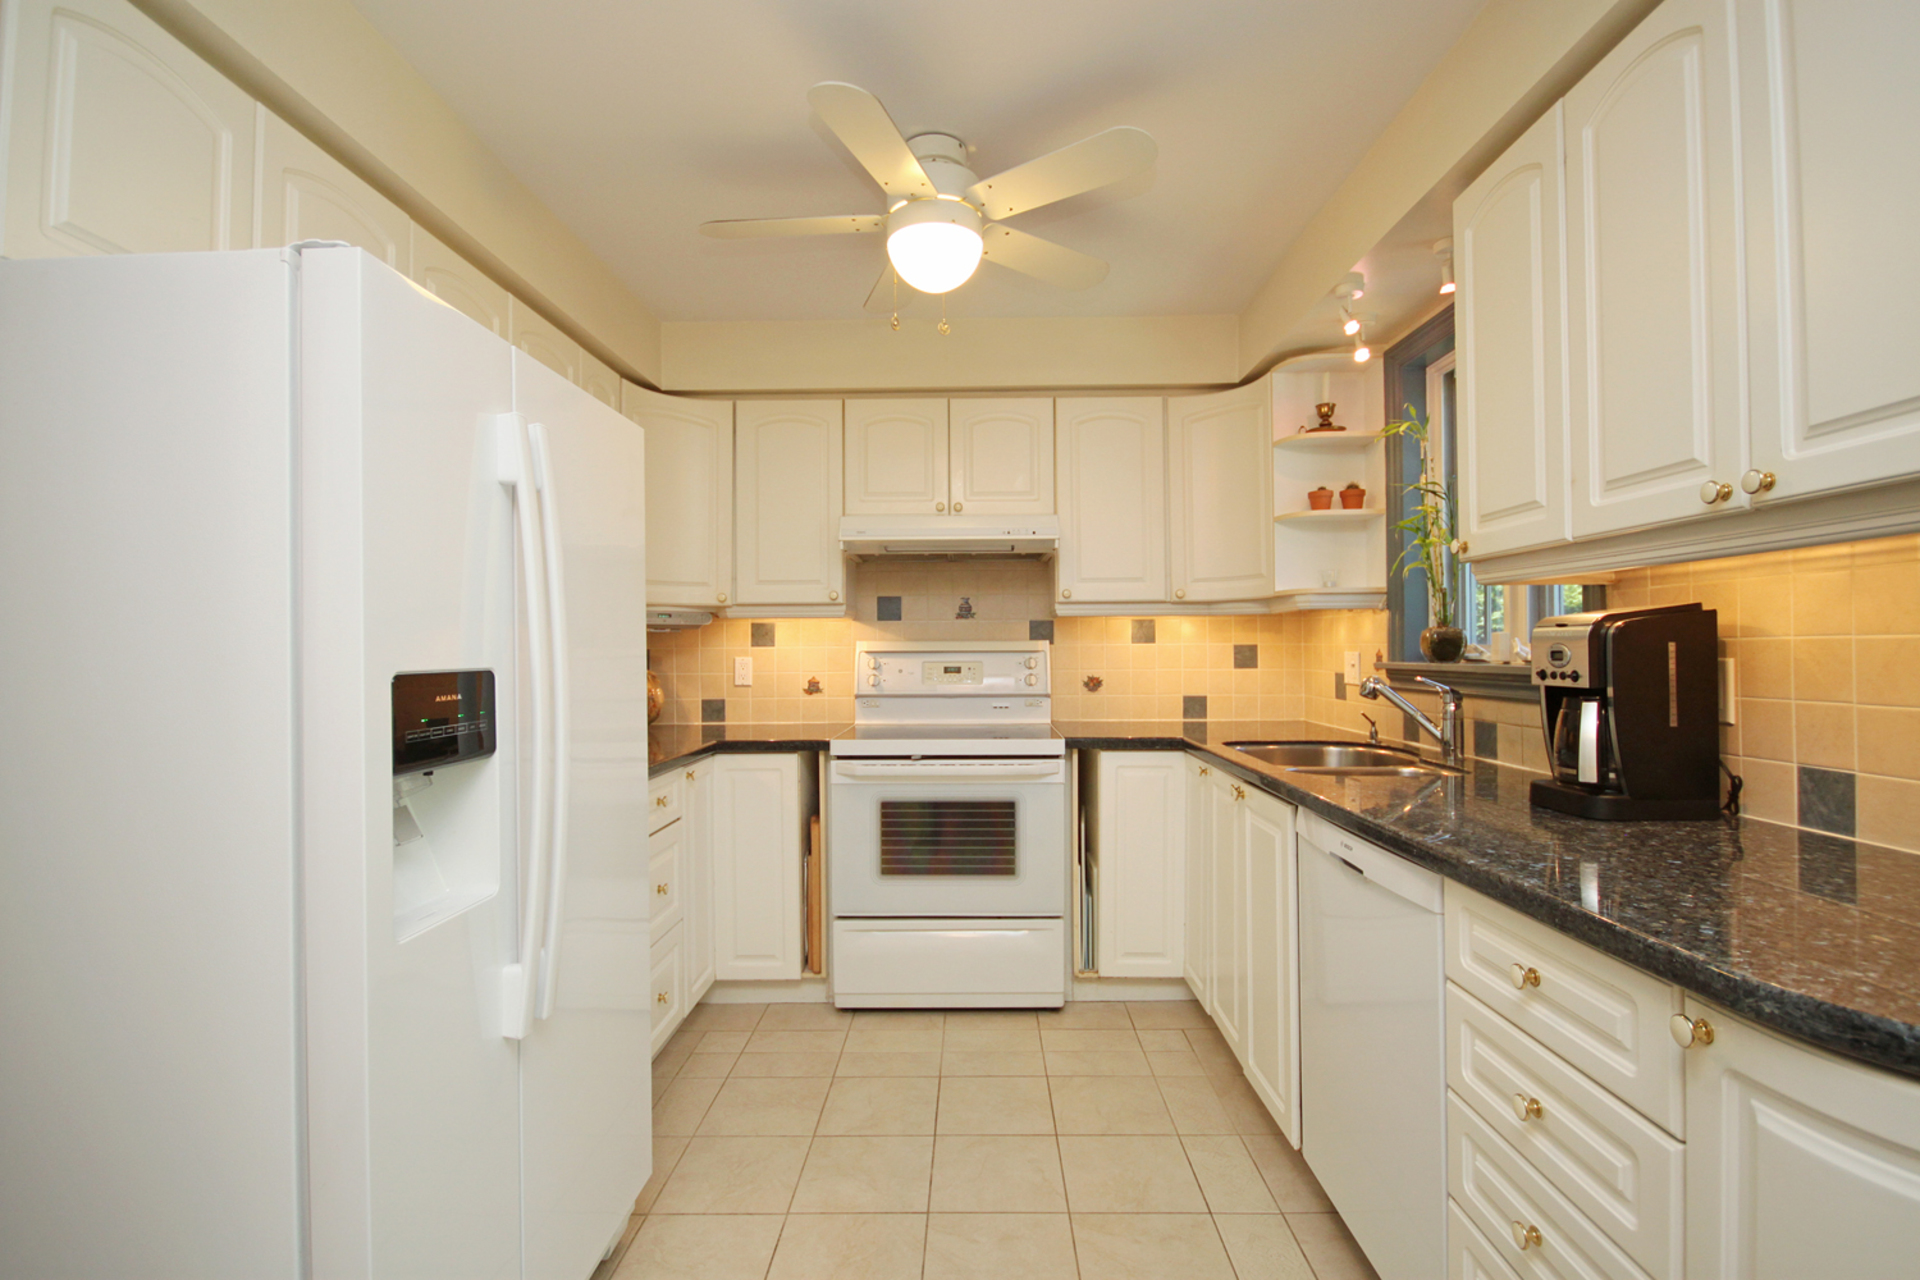 Kitchen at 8 Butterfield Drive, Parkwoods-Donalda, Toronto